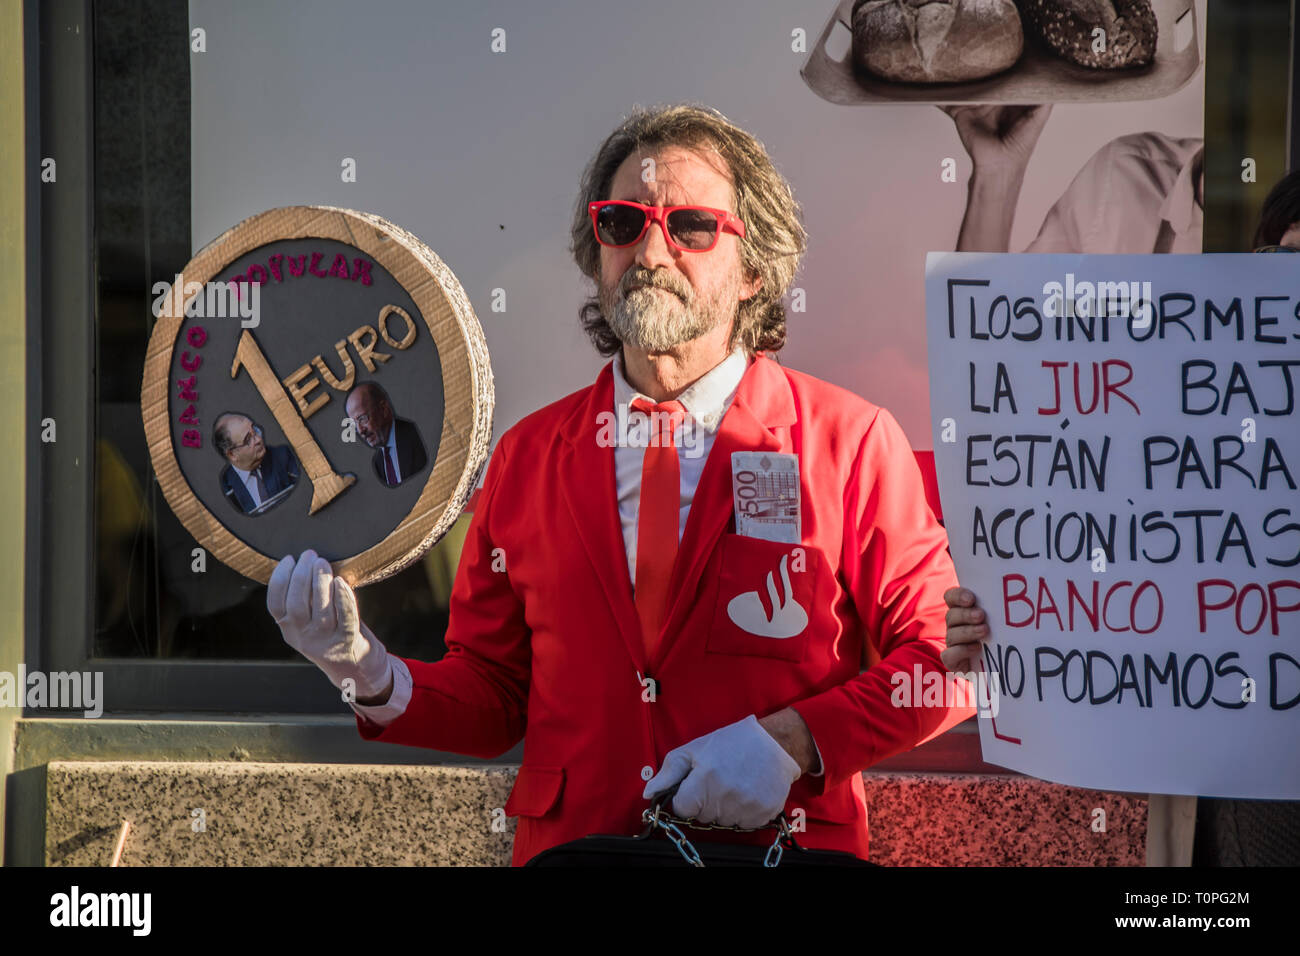 A man with suite of santander bank a nd in one of their hands a euro palacard with a picture of executives of the popular bank.  Demonstration against the popular bank, of the group of Santander bank by the small shareholders swindled in the year 2018. 305,000 shareholders lost all their money for the bankrupt of the popular bank. executed by the fraud of the group of Emilio Saracho with the bank of Spain. Credit: Alberto Sibaja Ramírez/Alamy Live News - Stock Image